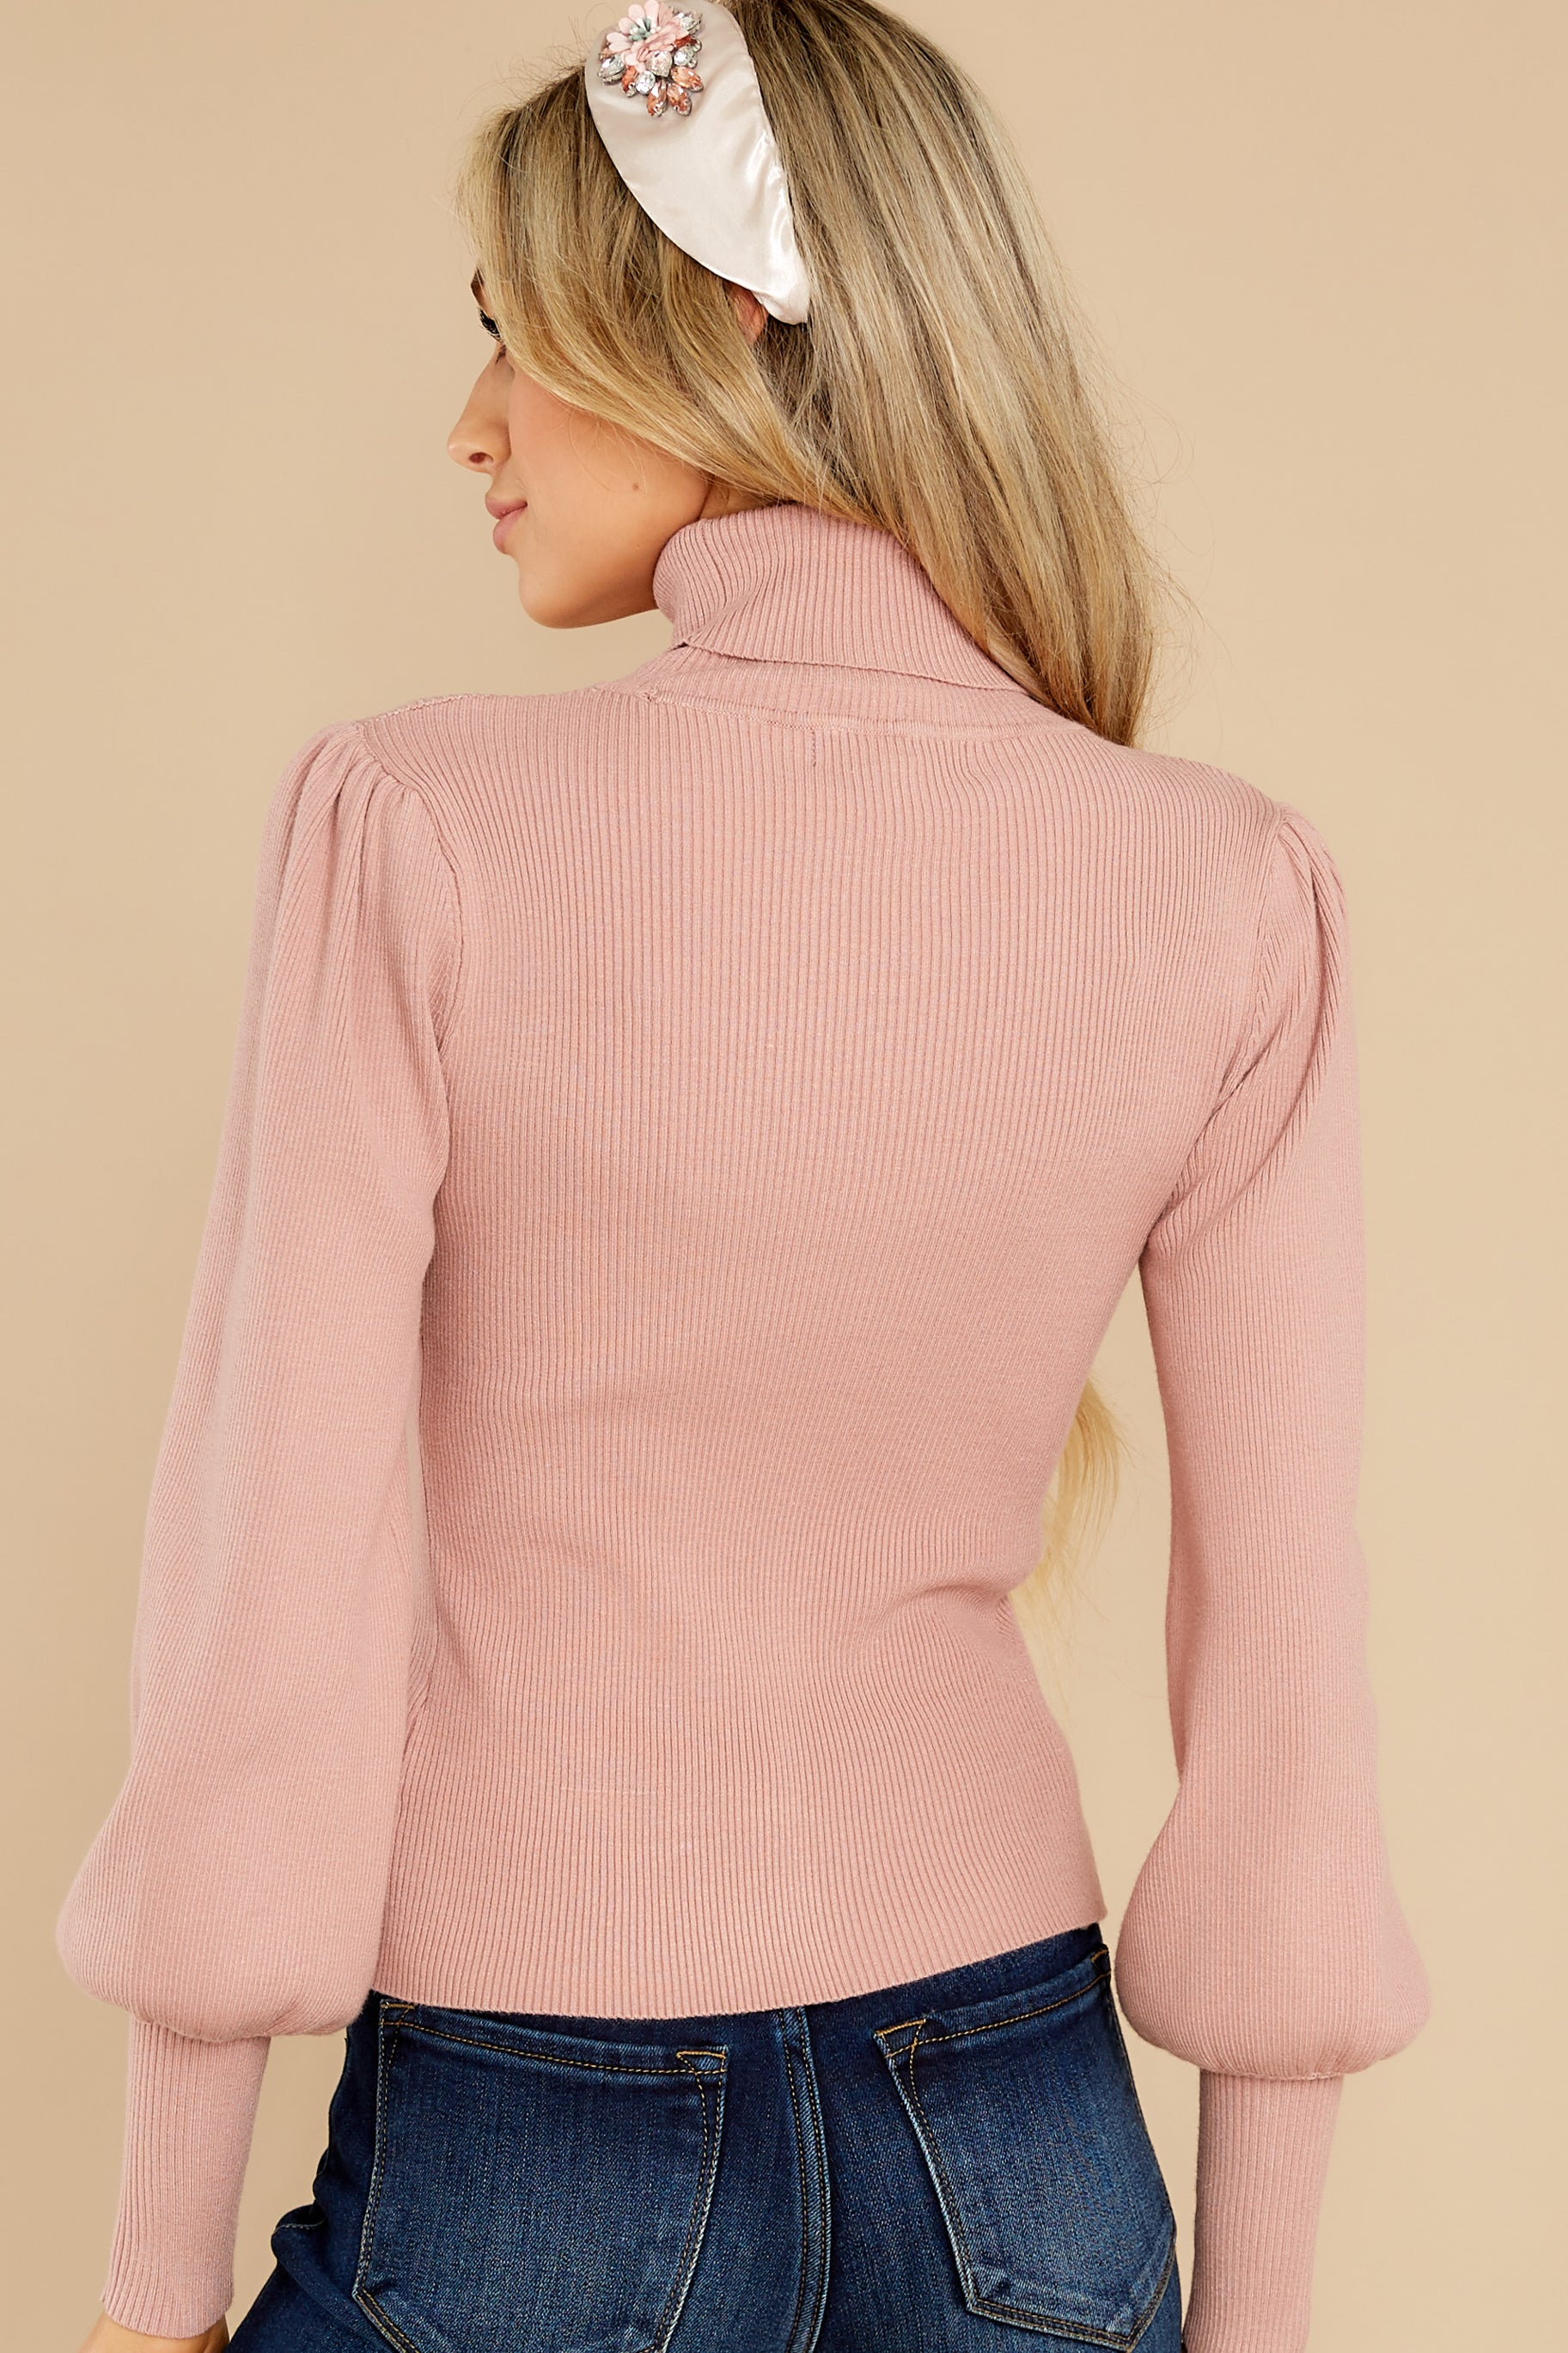 8 Waiting On Forever Mauve Blush Sweater at reddress.com